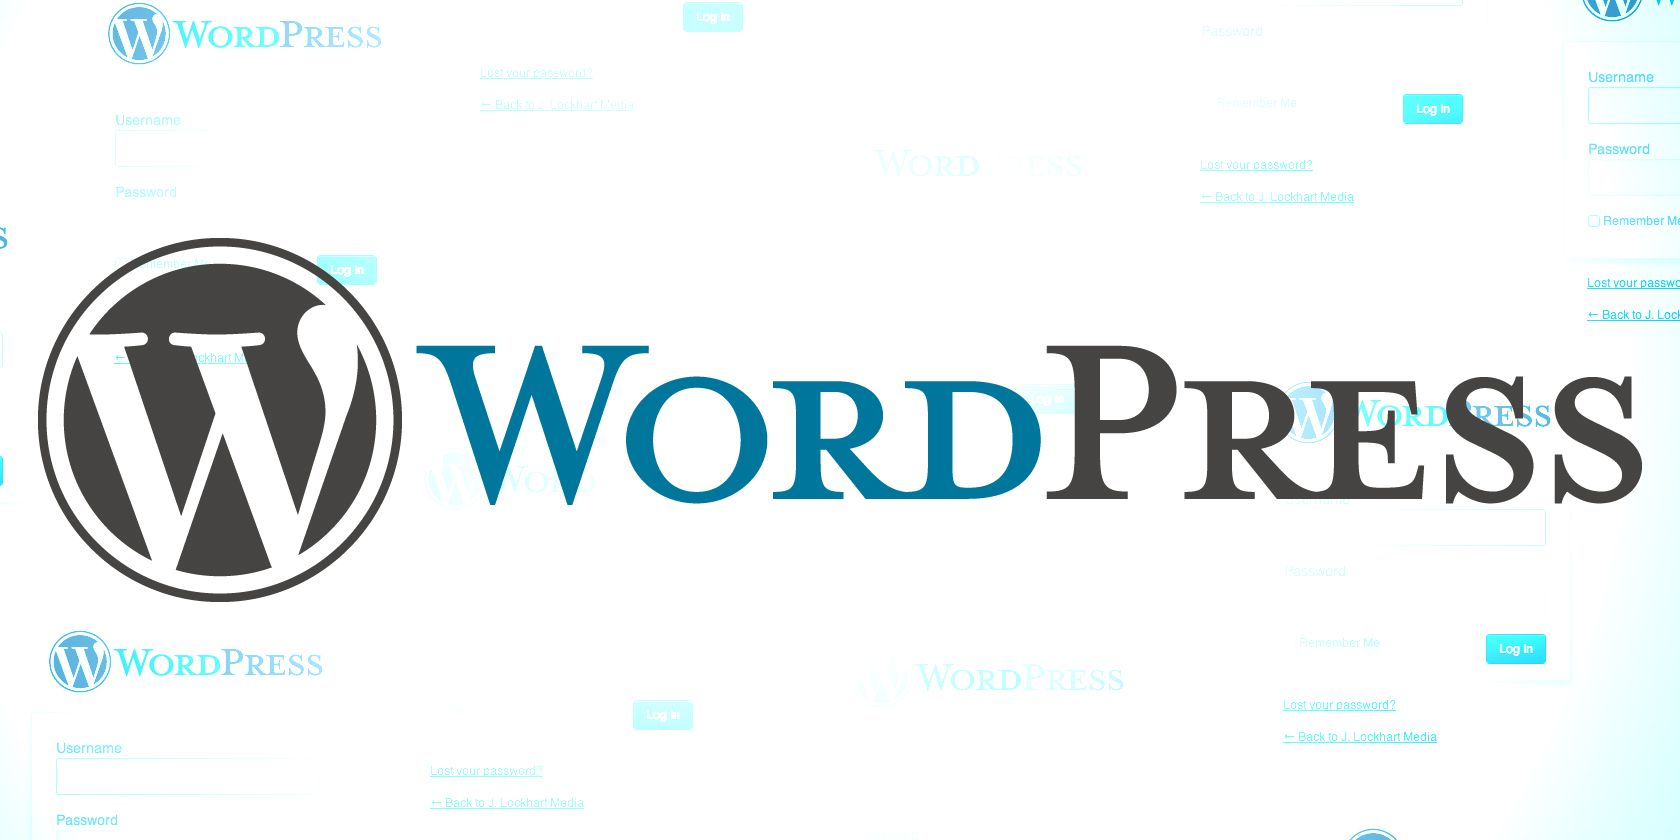 6 Ways to Use WordPress That Aren't Blogging